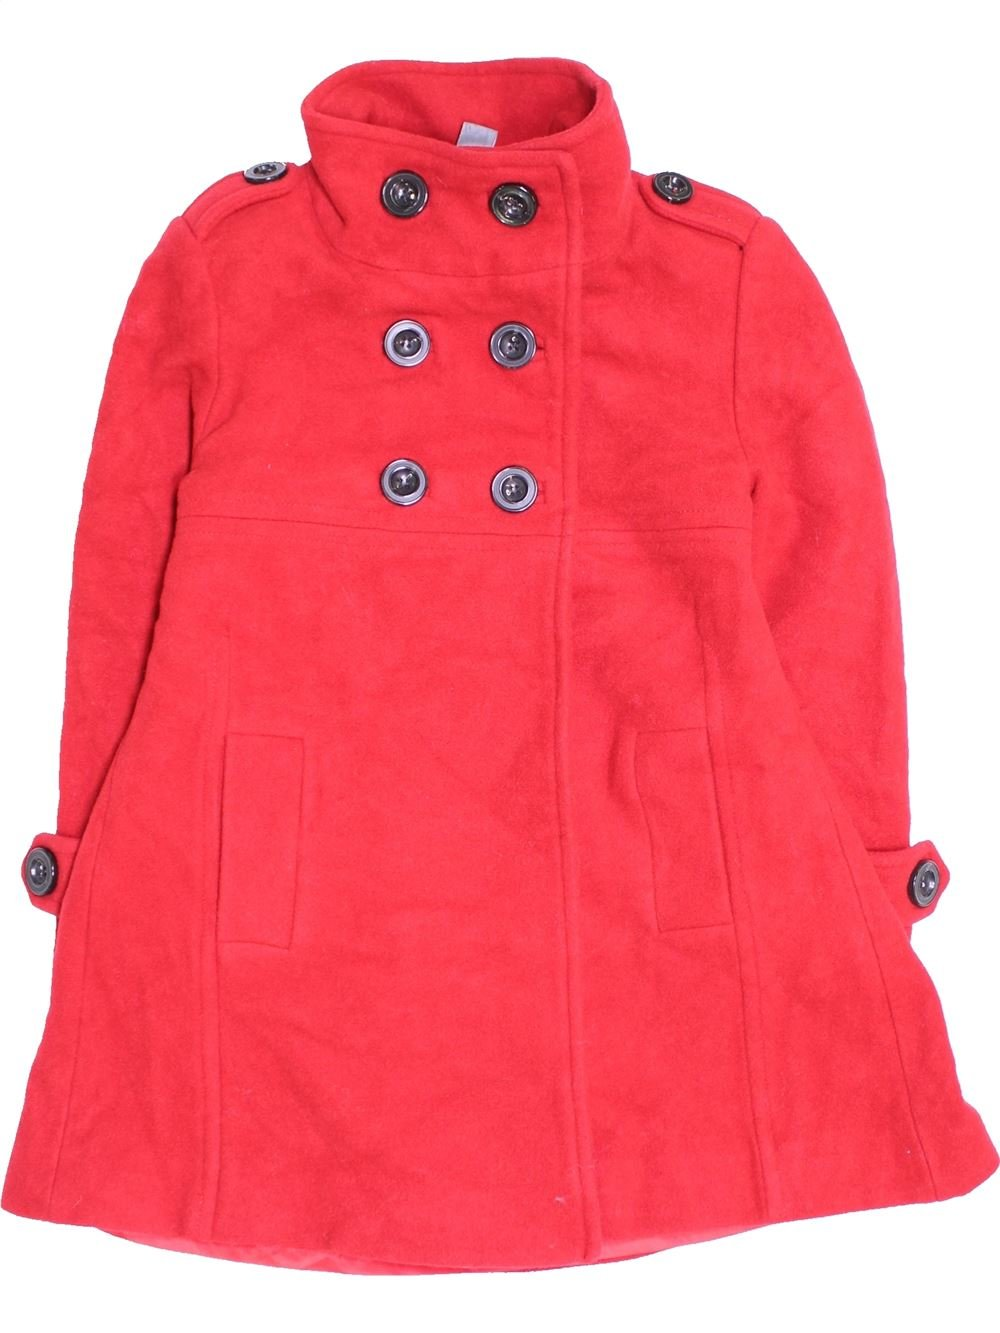 detailed pictures sold worldwide best choice Manteau Fille ZARA 6 ans pas cher, 19.25 € - #1479724